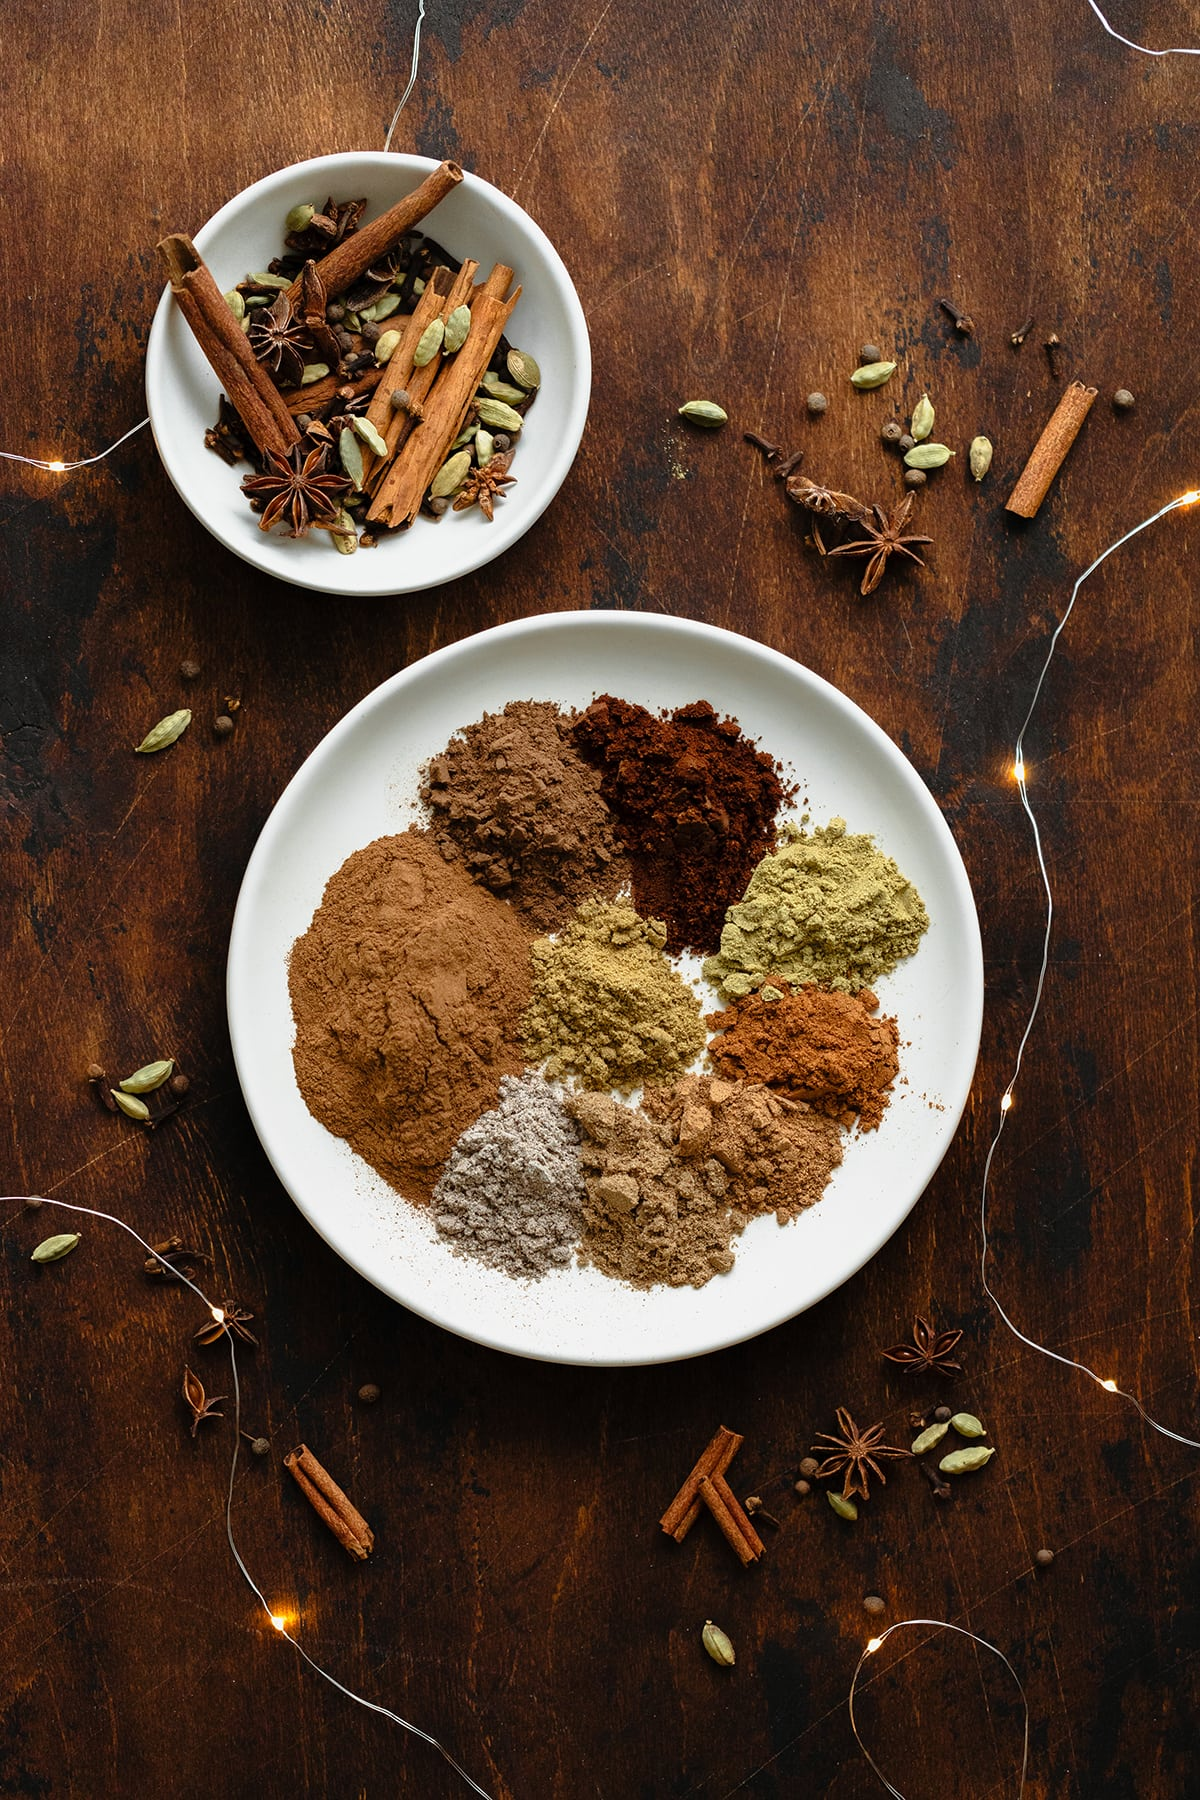 A photo of all the spices used in the Christmas Spice Blend on a white plate. On a dark wooden background and fairy lights.